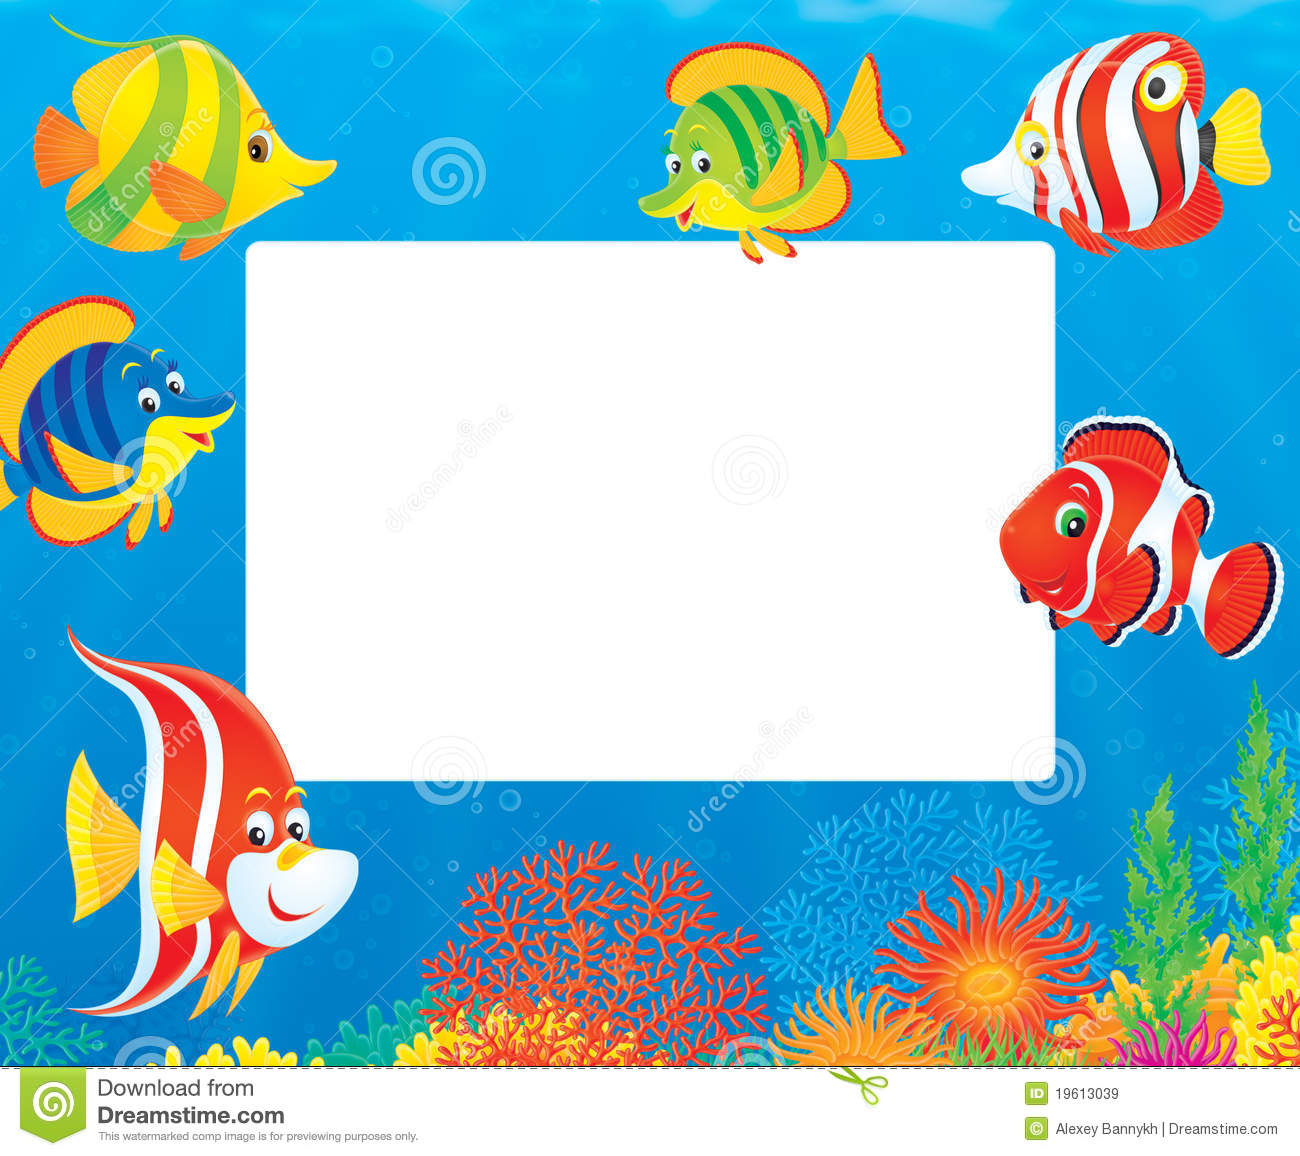 ... tropical fishes swimming above a colorful coral reef in a tropical sea